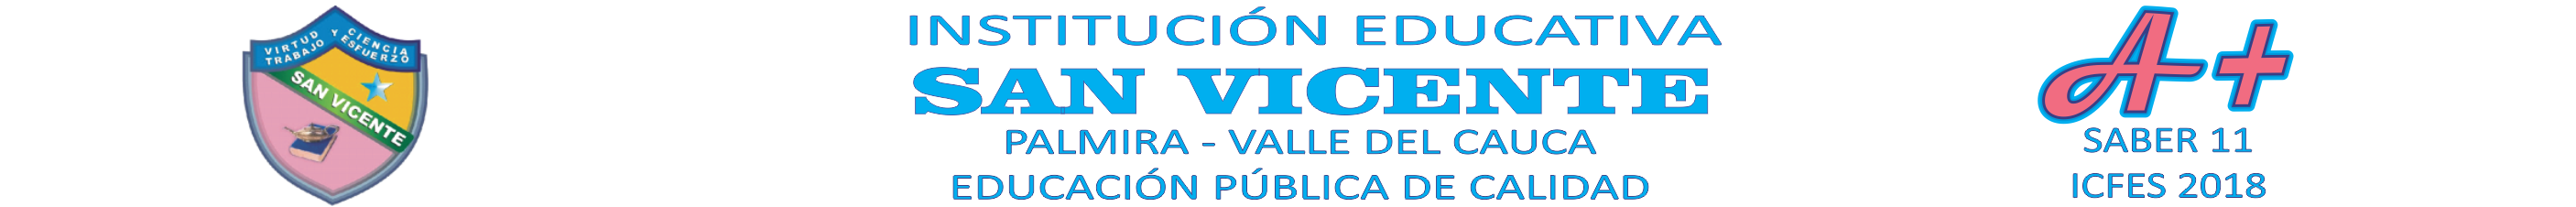 INSTITUCION EDUCATIVA SAN VICENTE